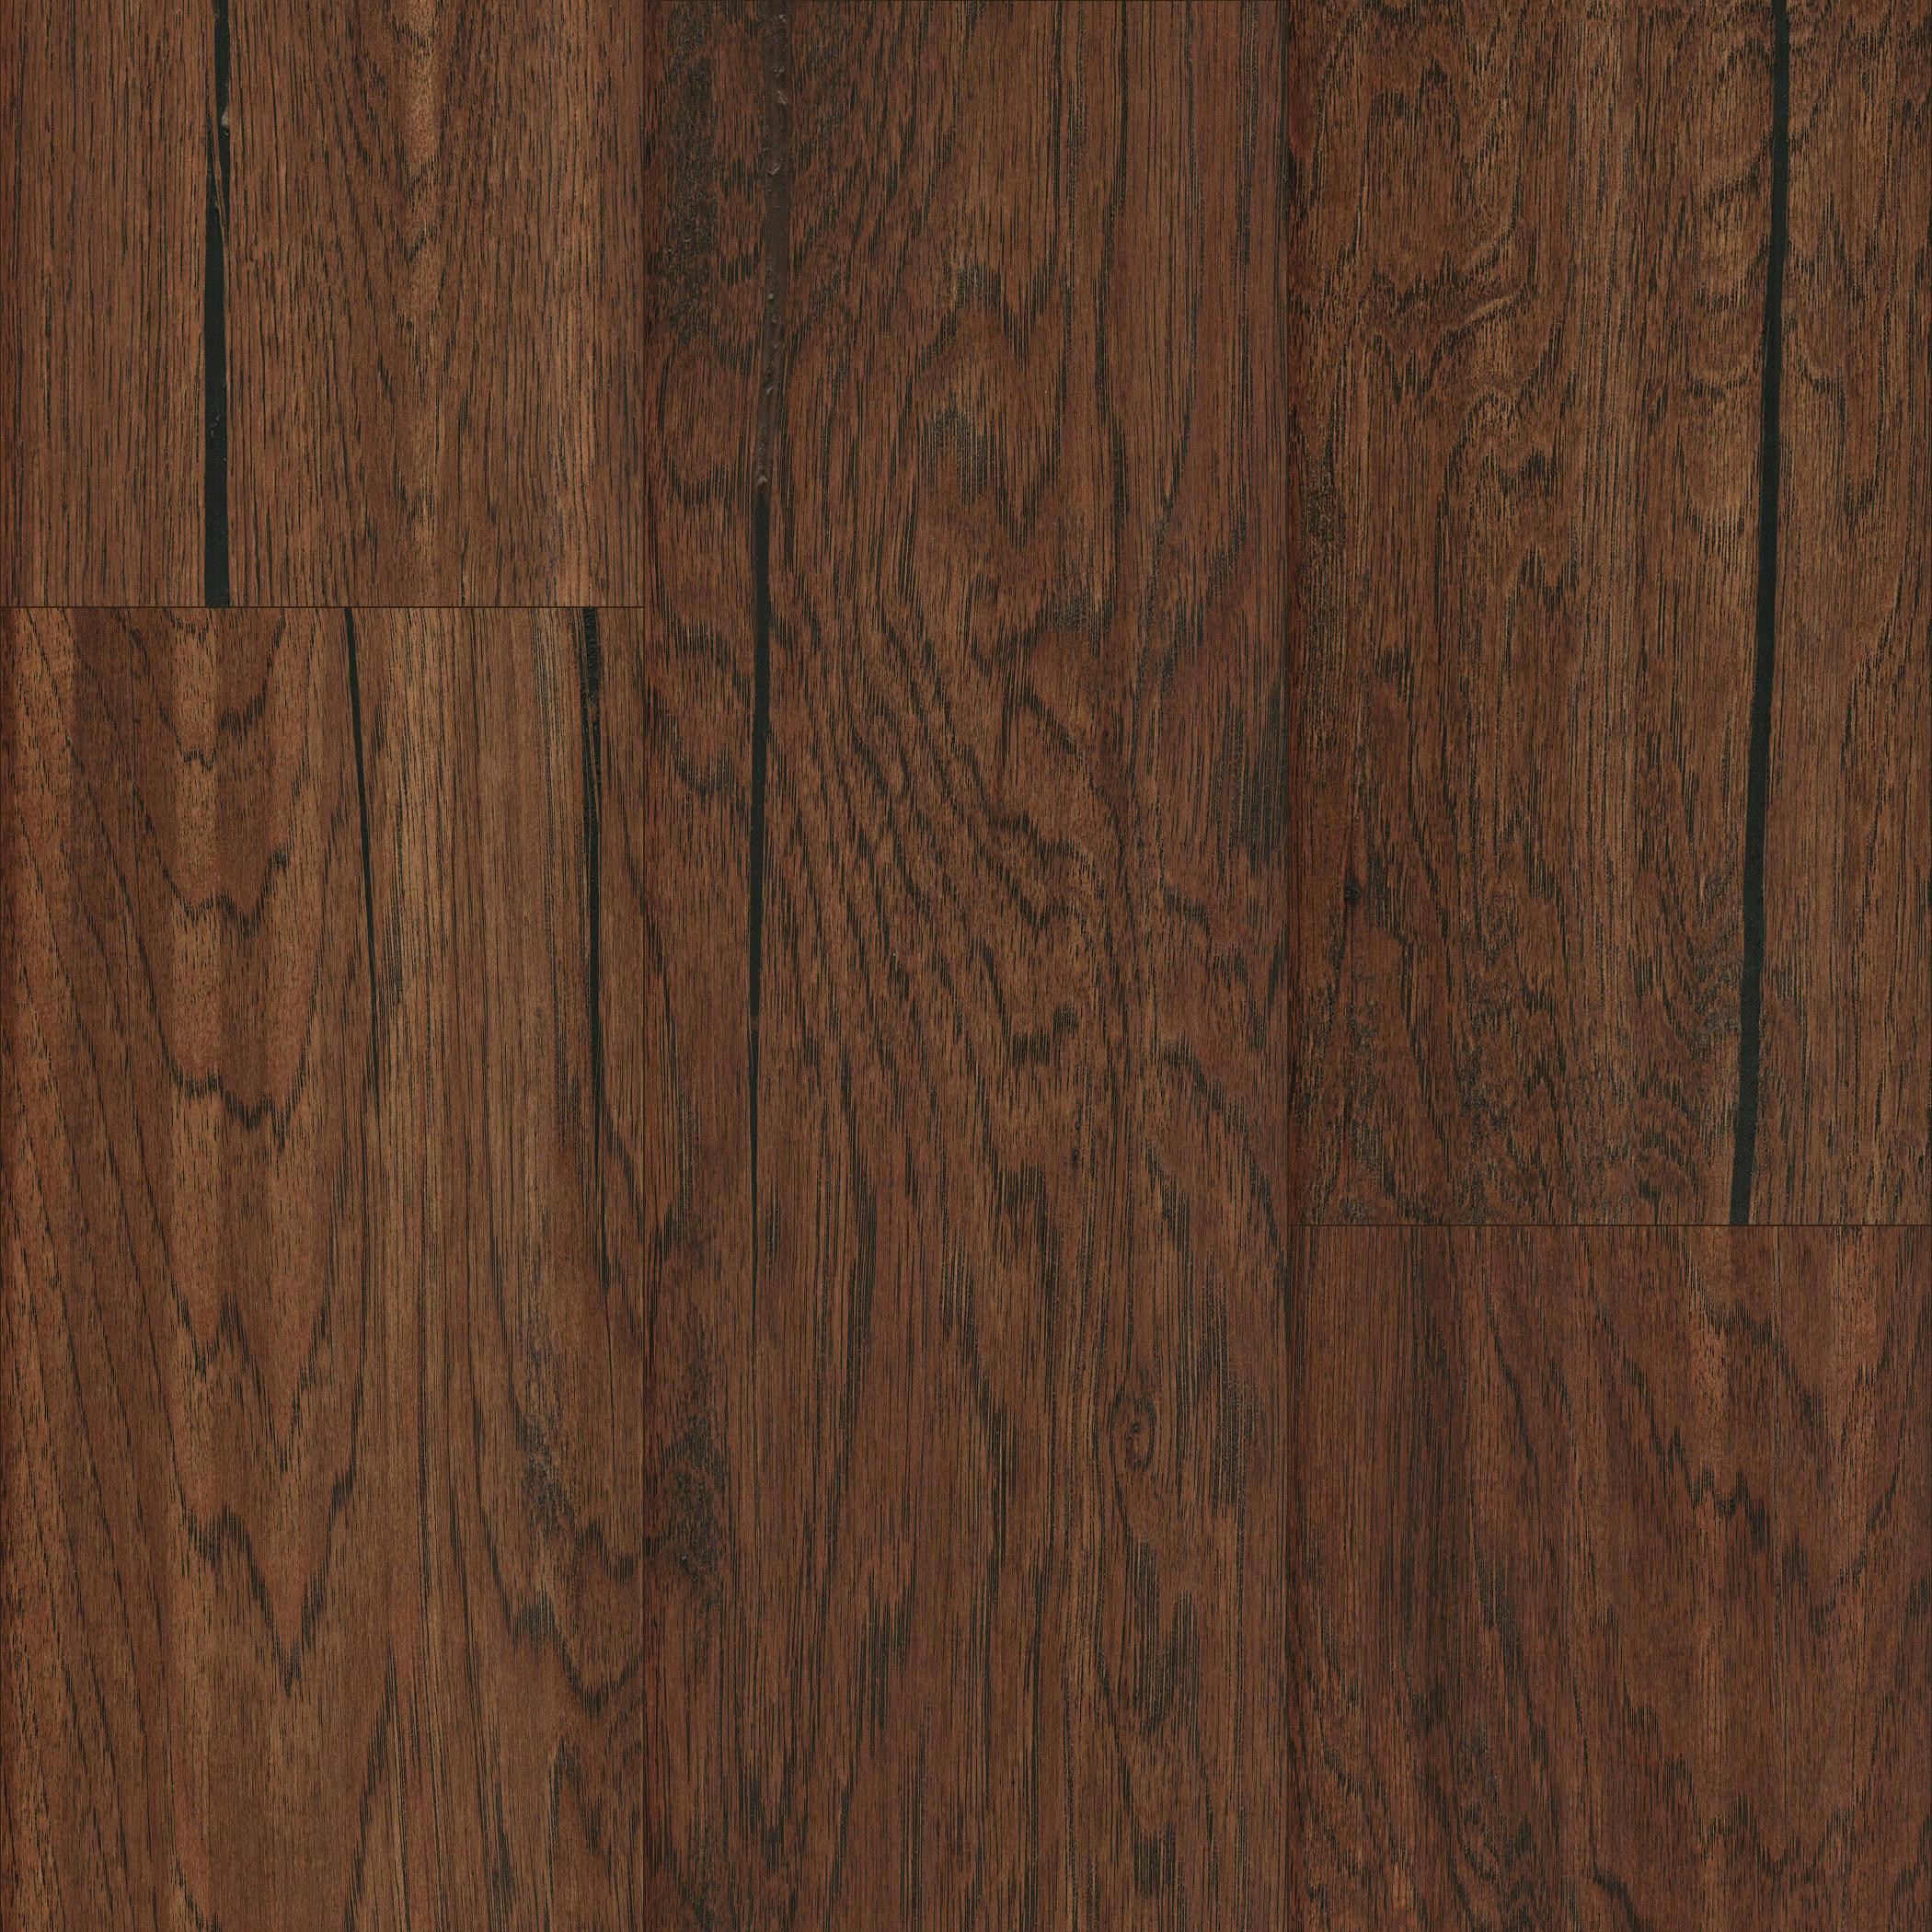 hardwood flooring that will not scratch of mullican san marco hickory provincial 7 sculpted engineered with regard to mullican san marco hickory provincial 7 sculpted engineered hardwood flooring